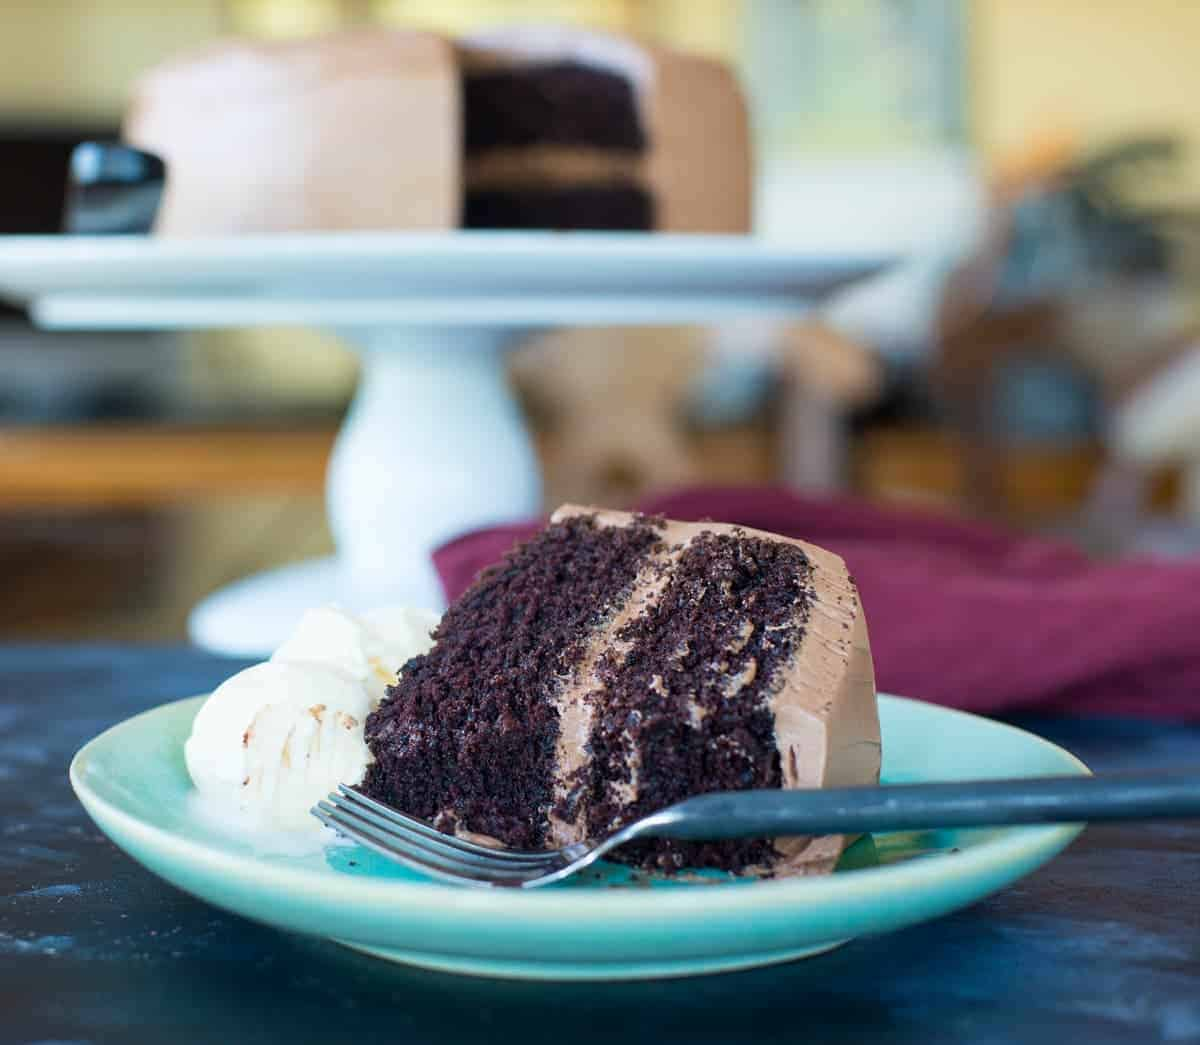 mocha cake recipe with ice cream. moist chocolate cake with a mocha frosting.